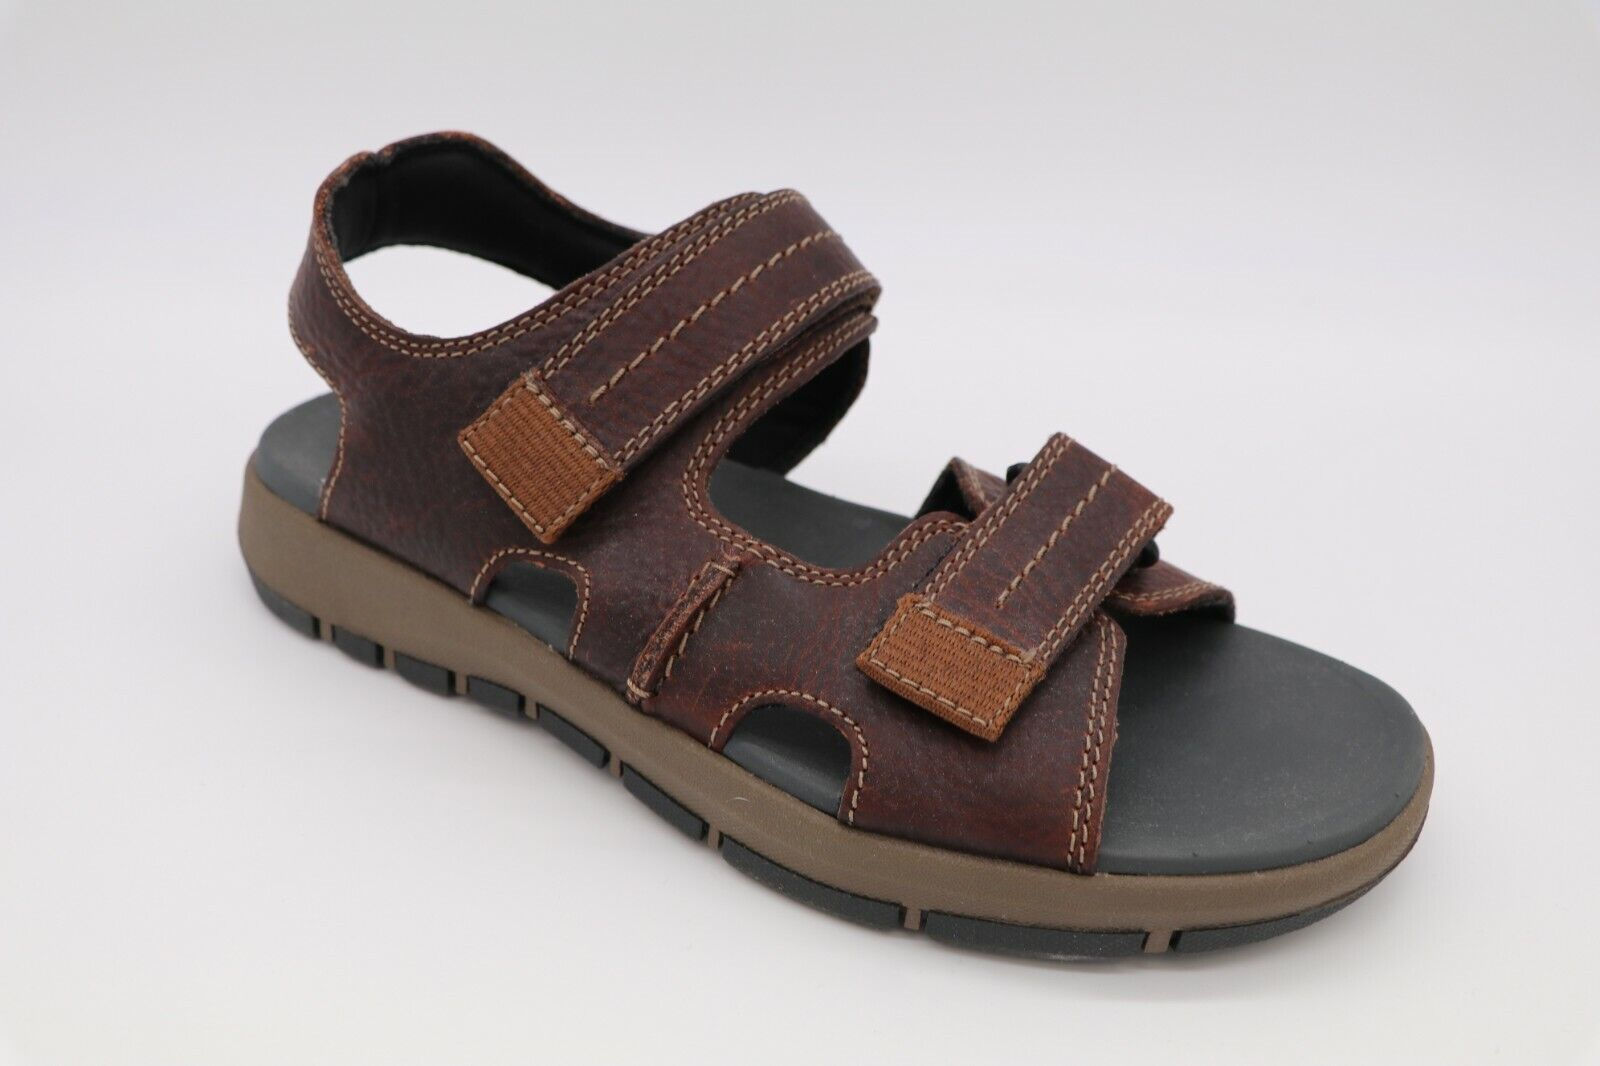 Men/'s Clarks Sandals Brixby Cove Dark Brown  Leather  26131521